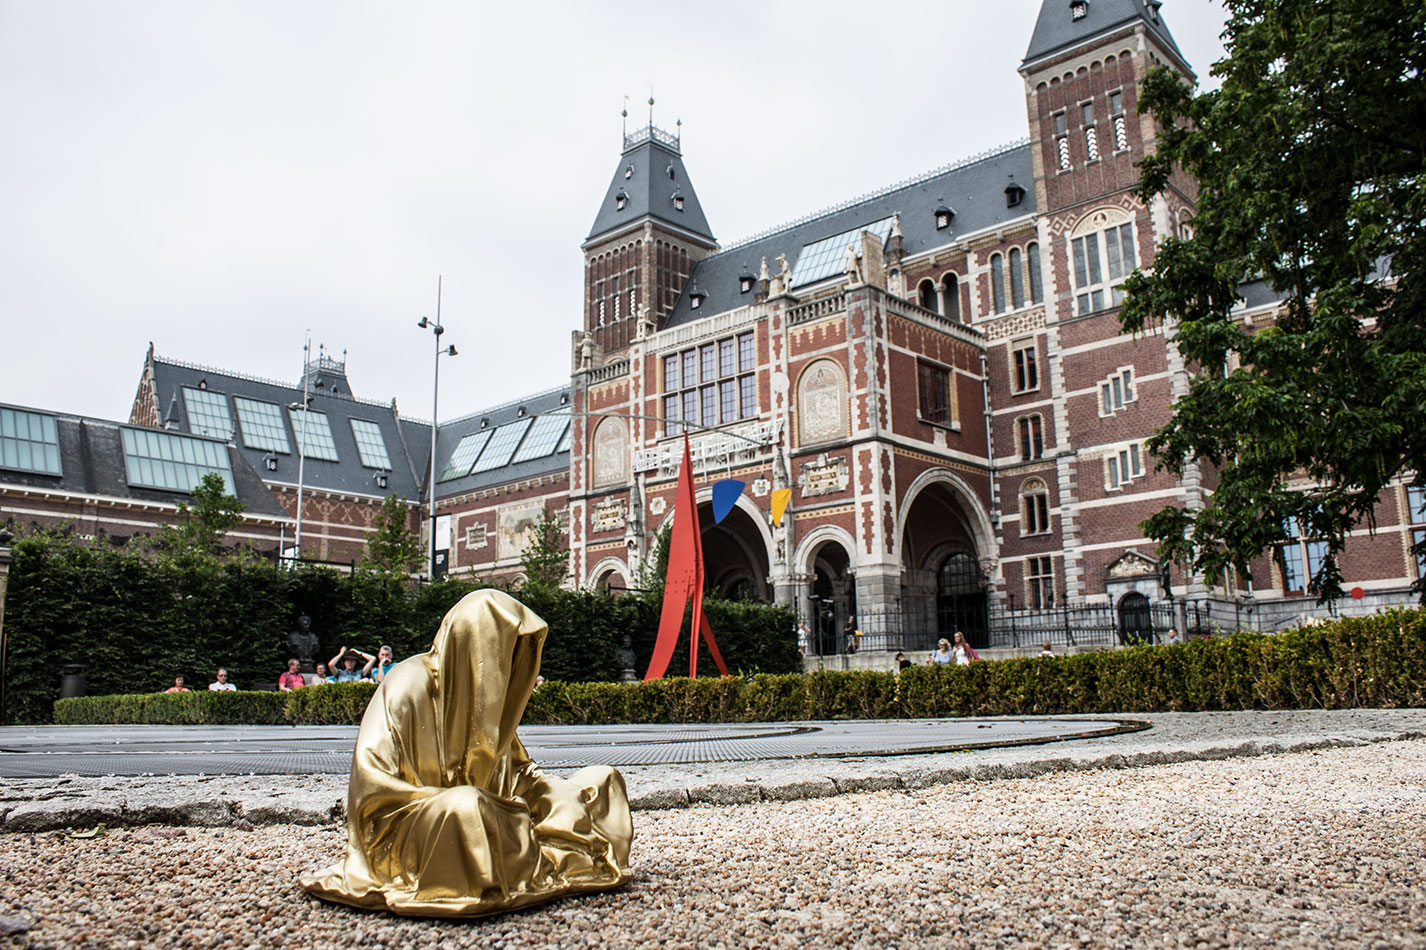 art-amstadam-netherlands-guardians-of-time-manfred-kielnhofer-public-modern-contemporary-art-fine-arts-sculpture-design-streat-art-2173